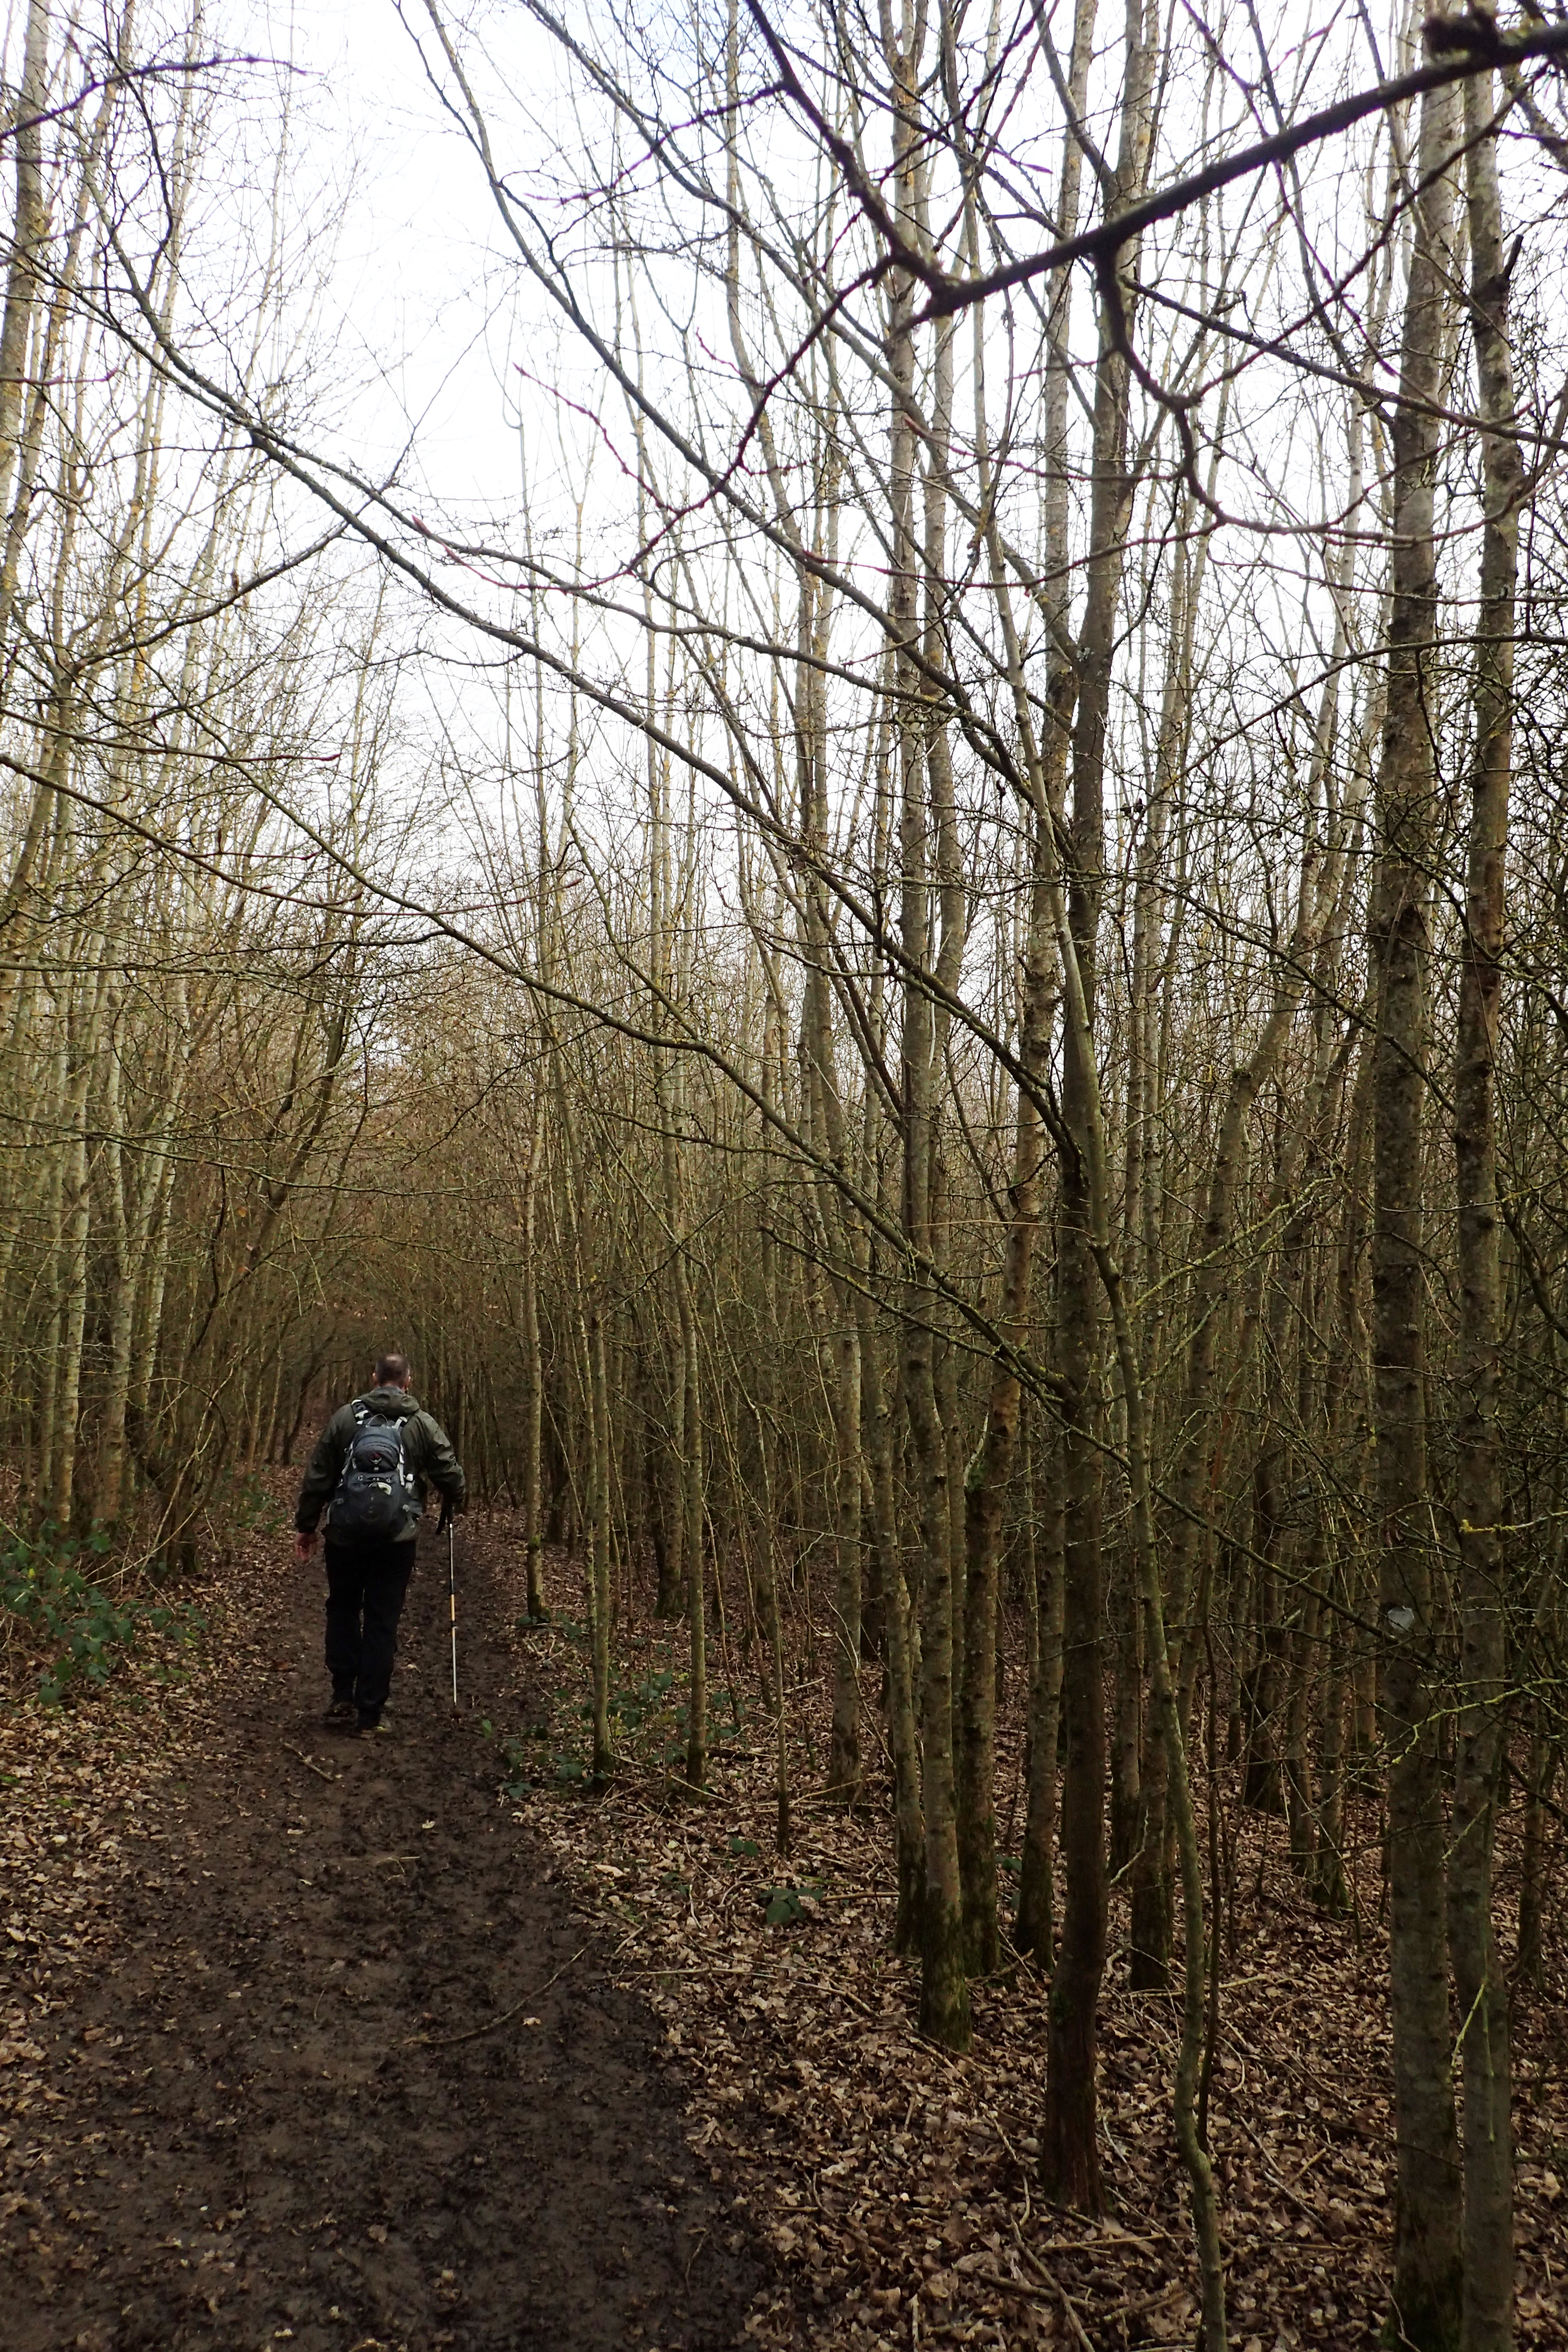 An avenue through a young coppice woodland